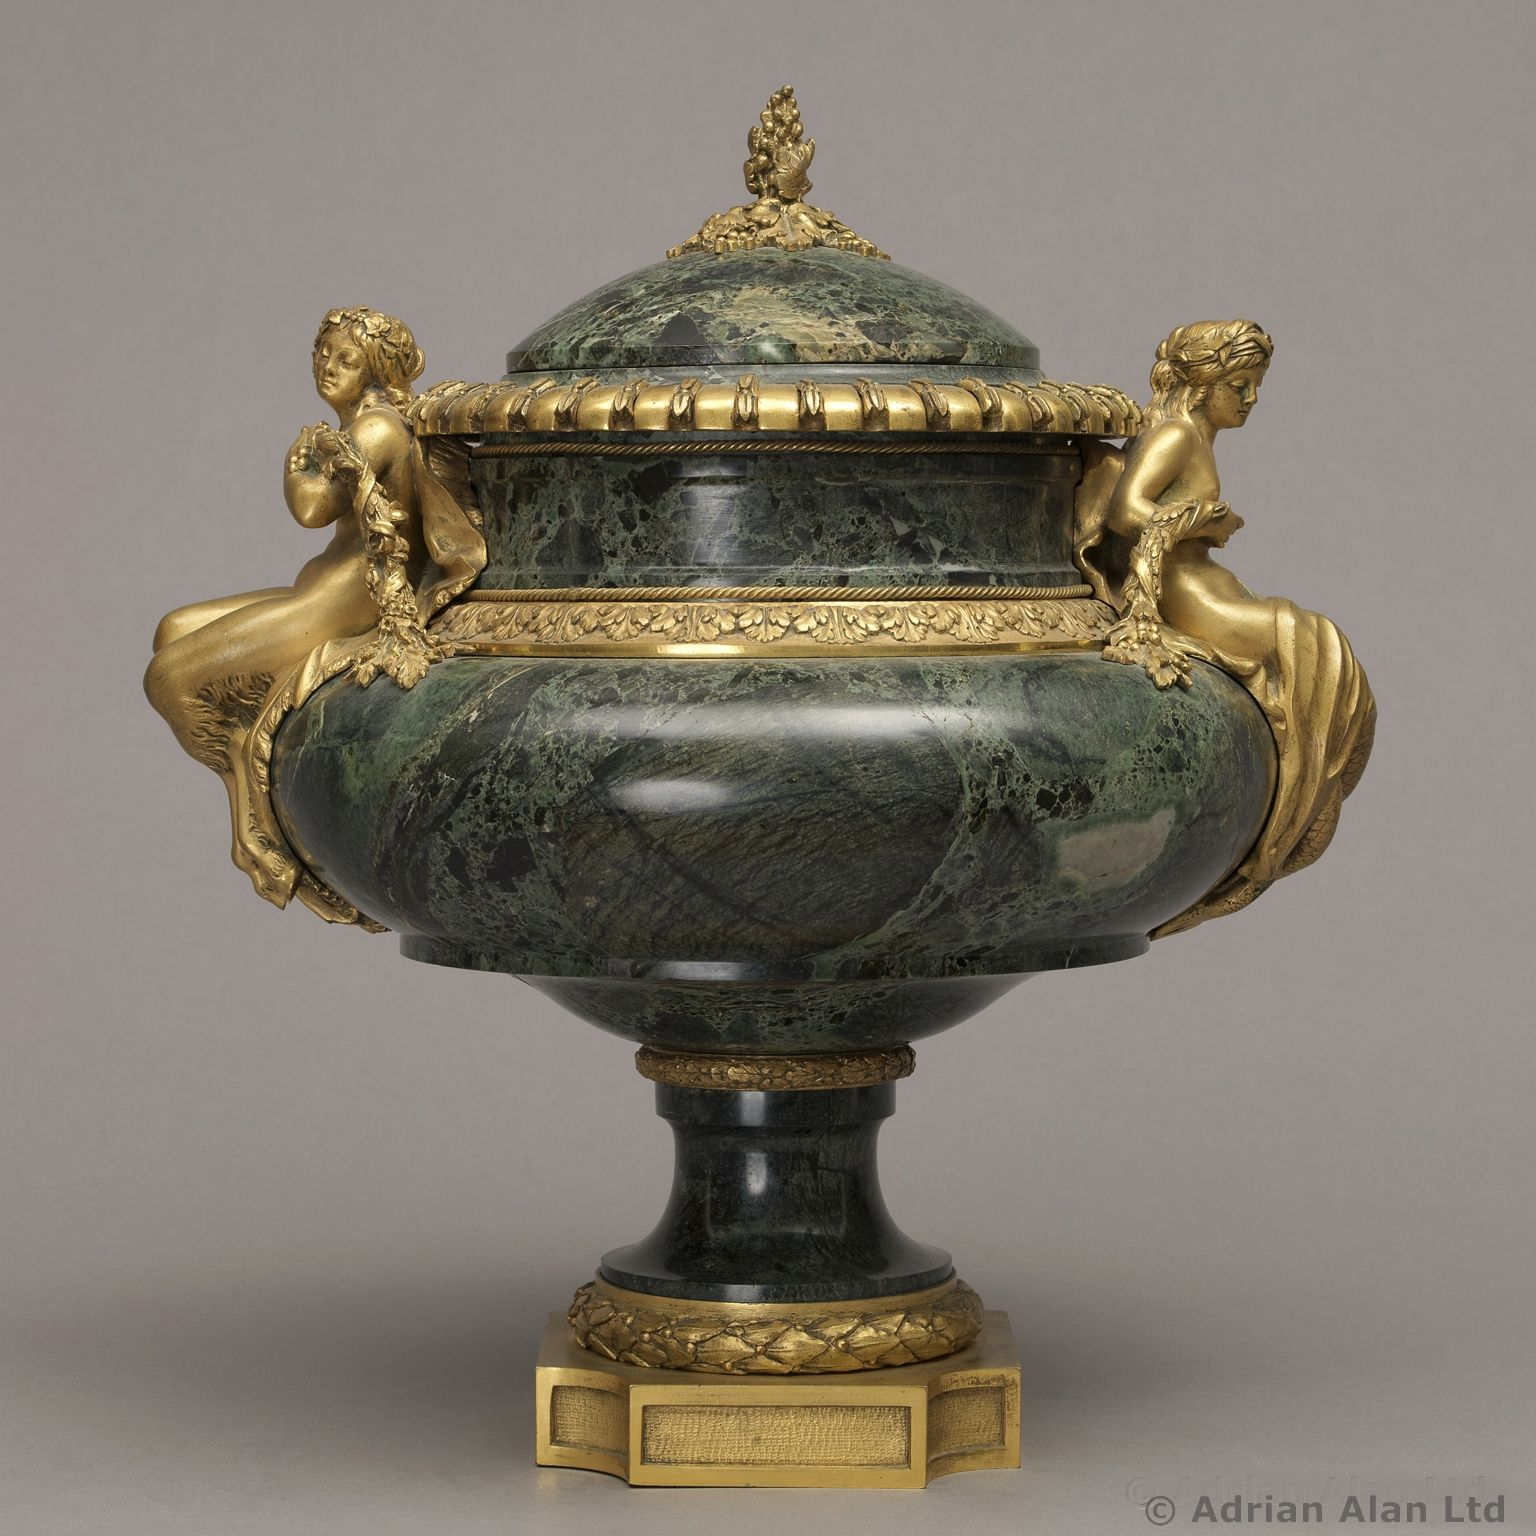 A Fine Louis XVI Style Gilt-Bronze Mounted Marble Urn Probably By Paul Sormani - #adrianalan